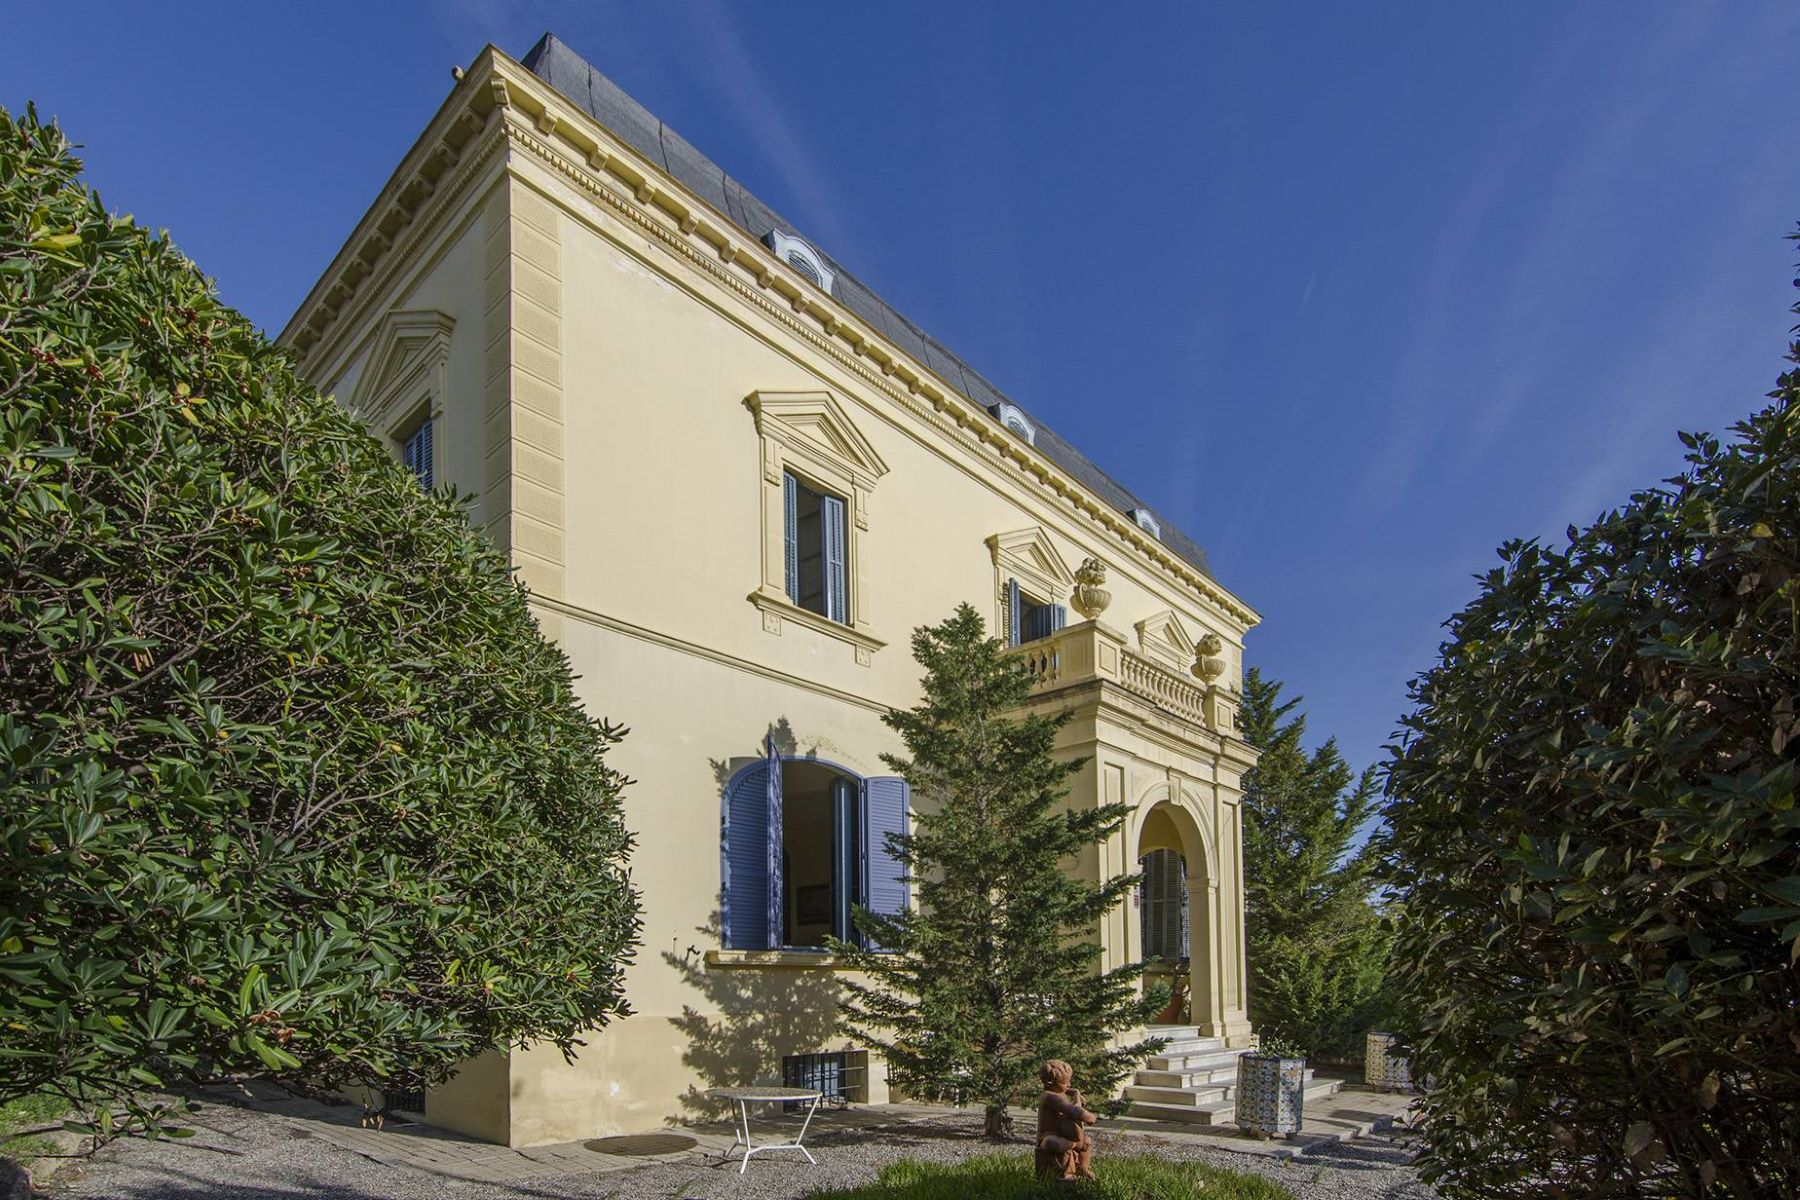 Single Family Home for Sale at Magnificent French Neoclassical Style House Close to Barcelona Other Cities Barcelona North Coast, Barcelona, 08328 Spain